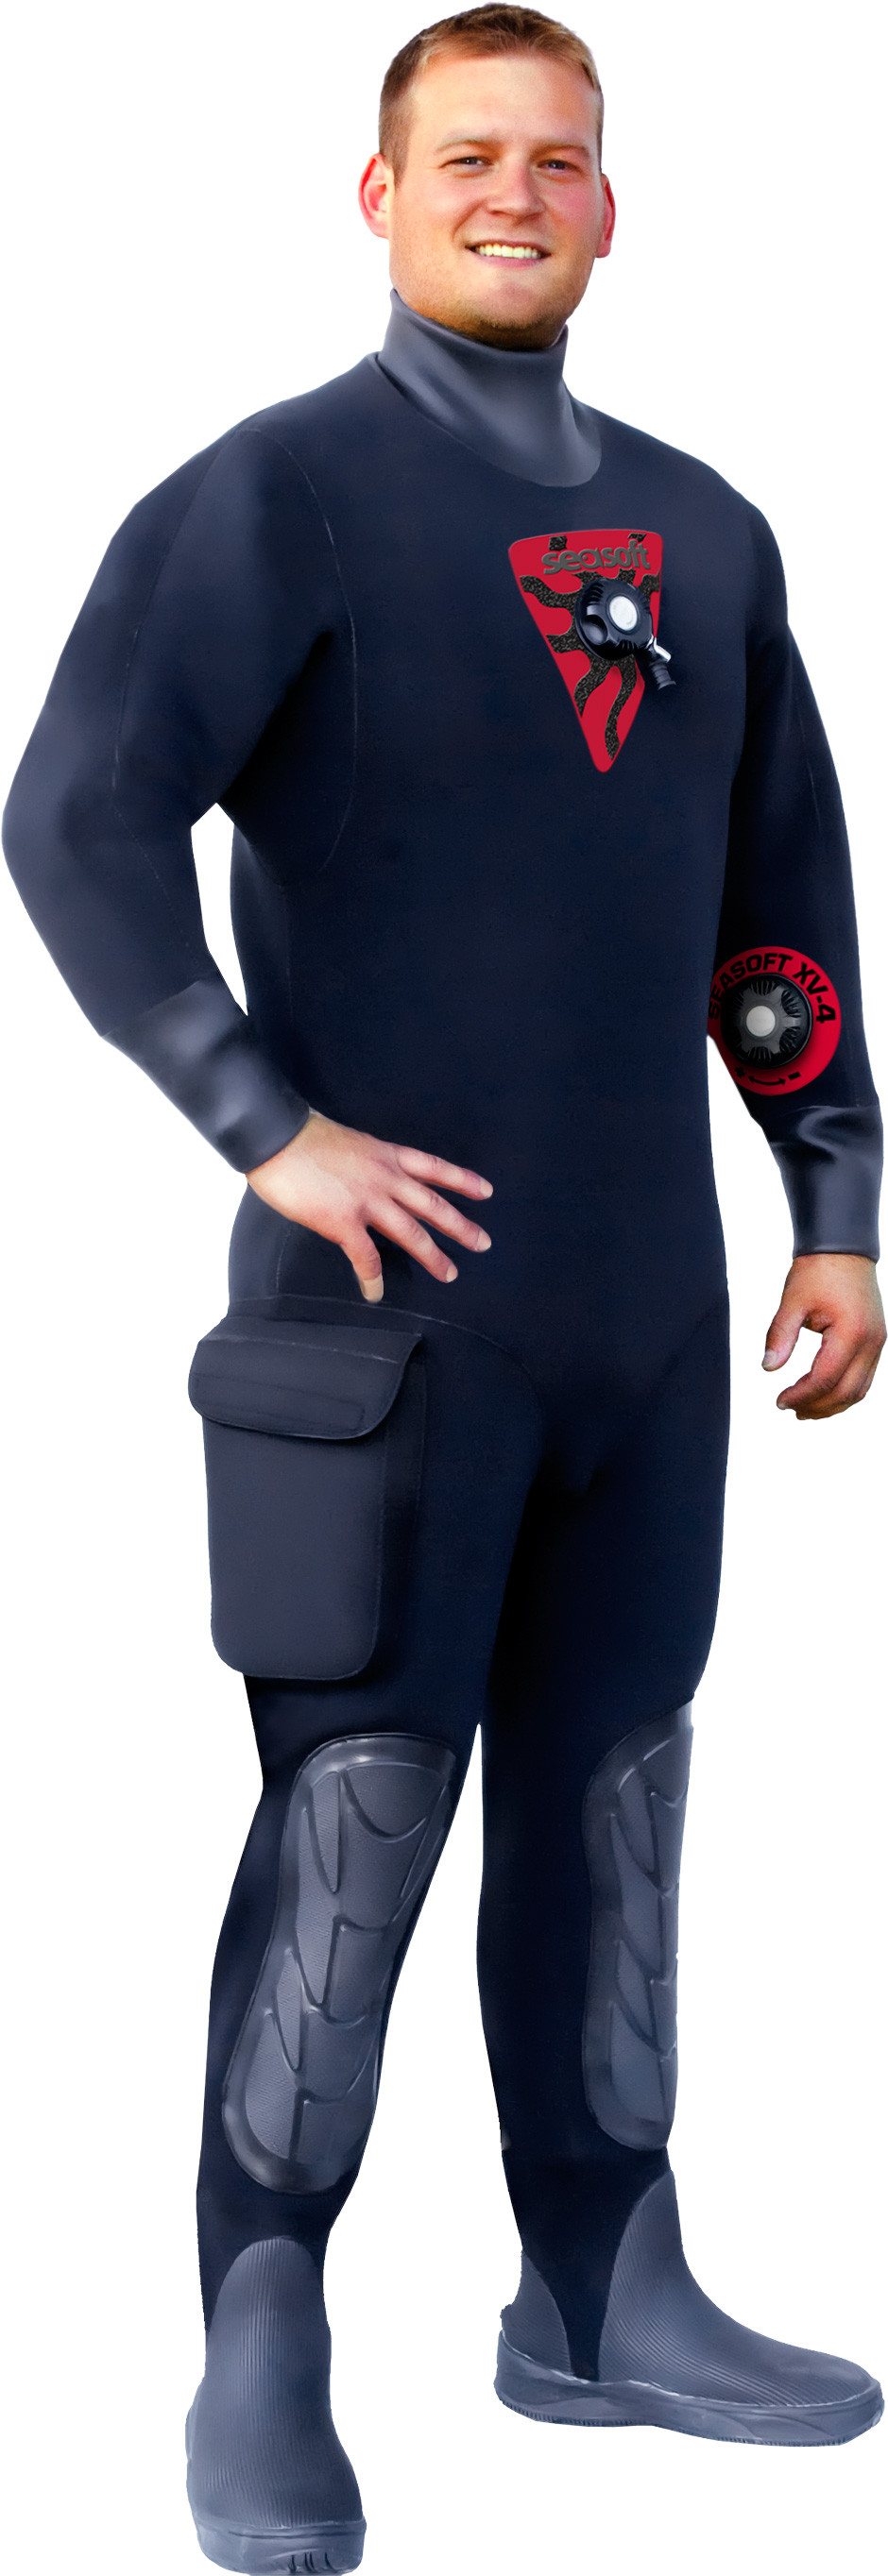 New XV-4 Drysuit